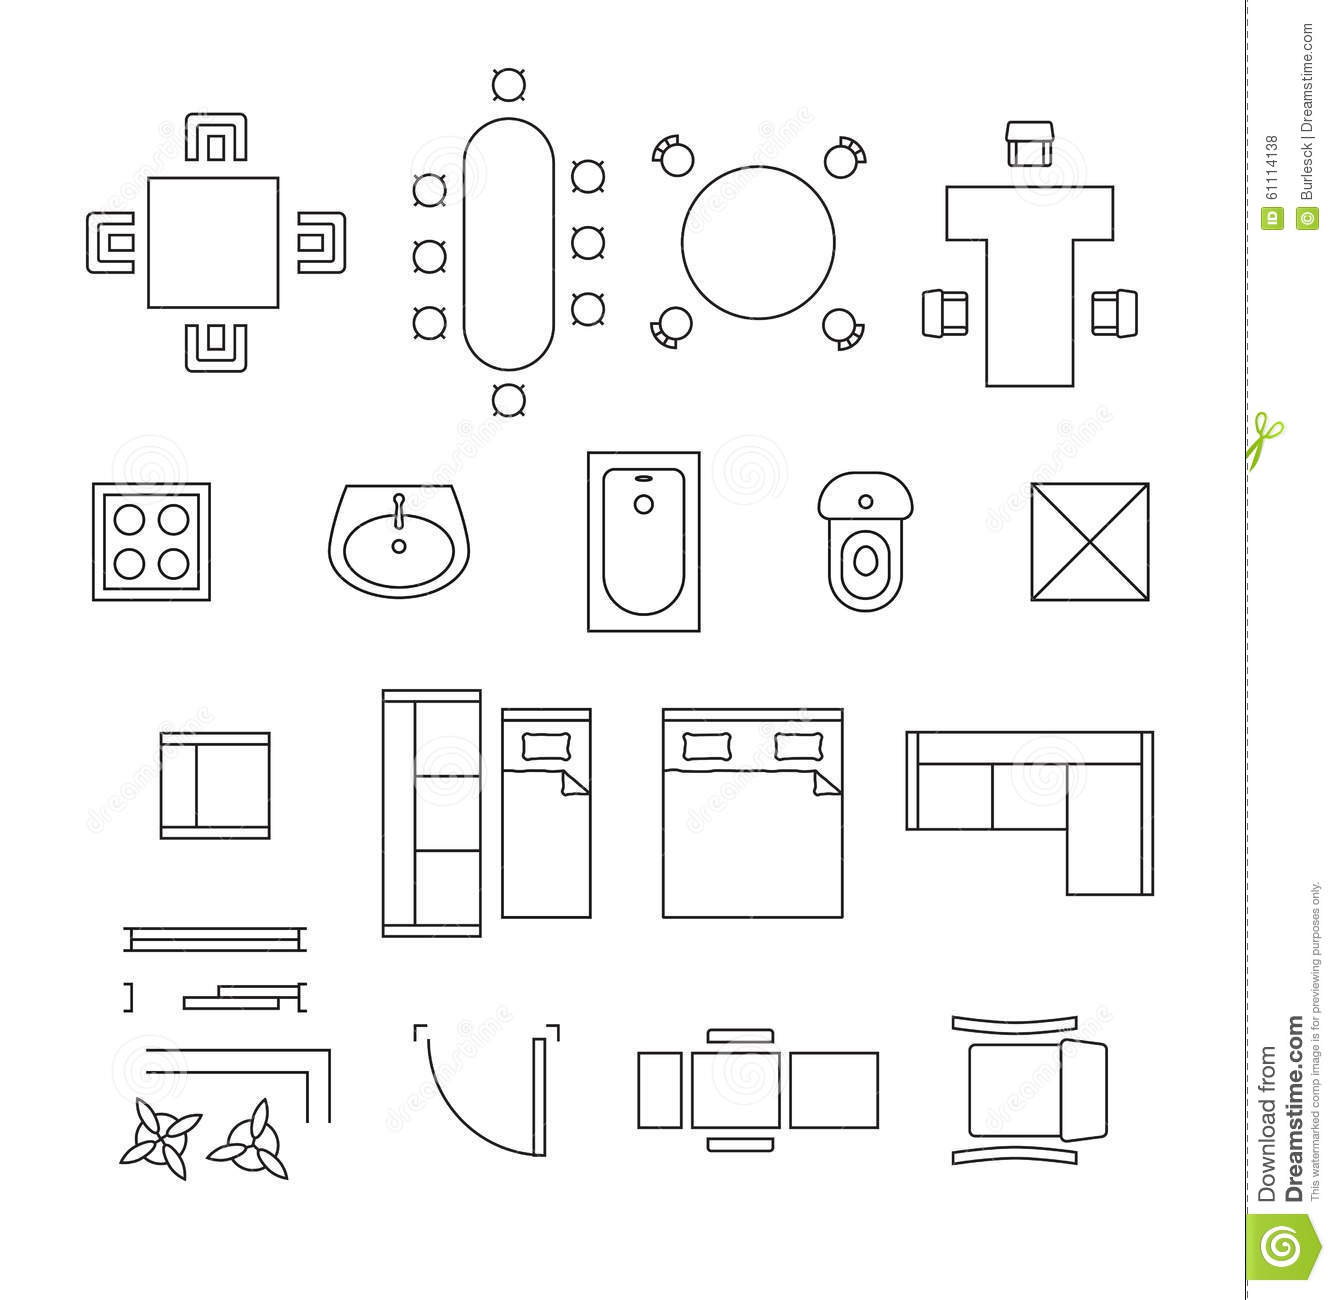 Clip Art Floor Plan Symbols 20 Free Cliparts